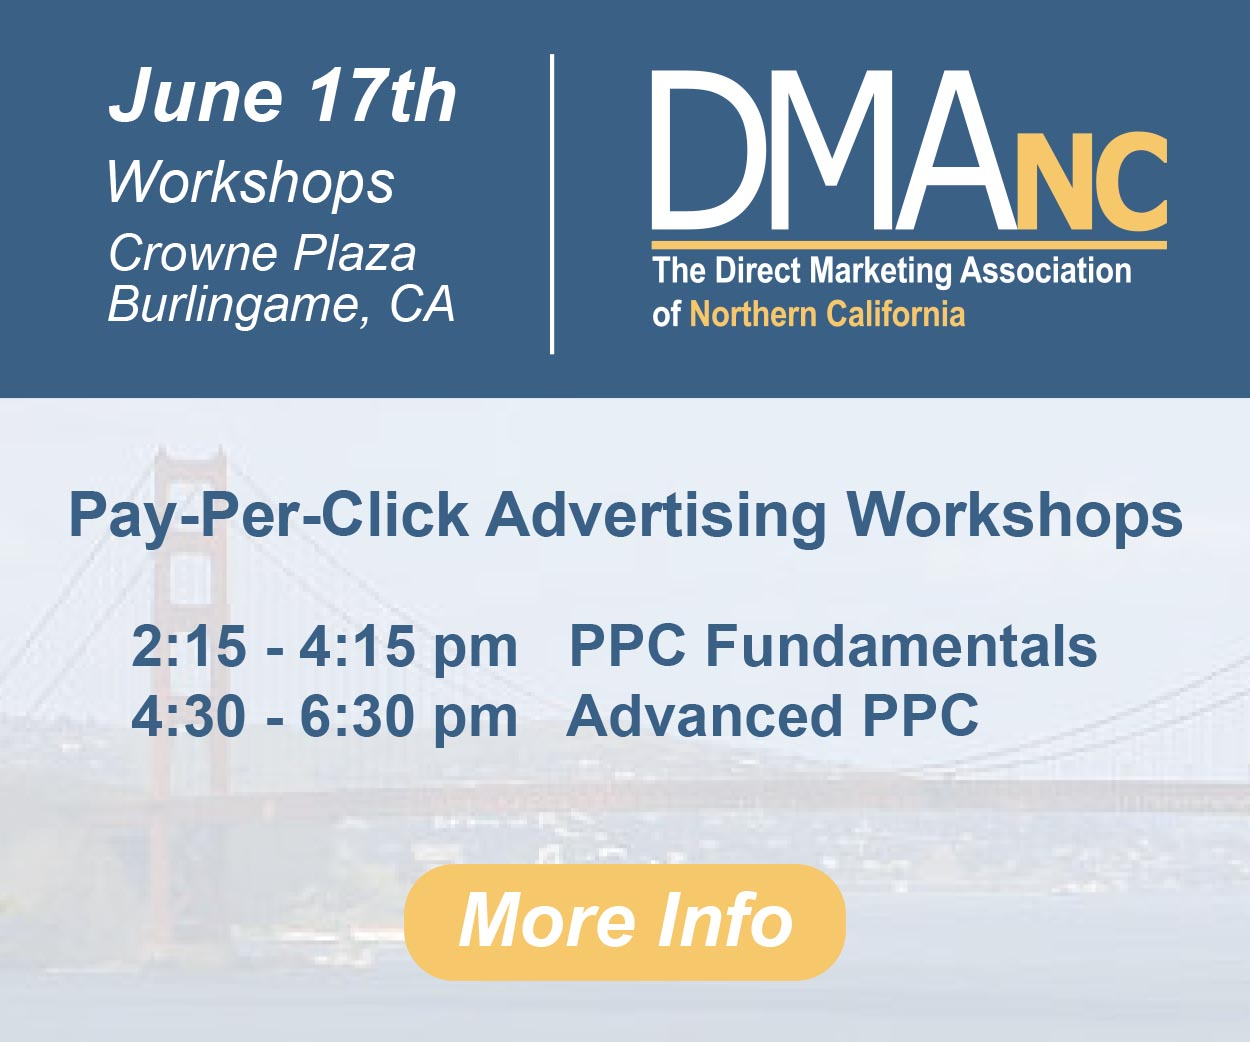 Direct Marketing Association of Northern California, June 17 conference announcement for PPC workshops